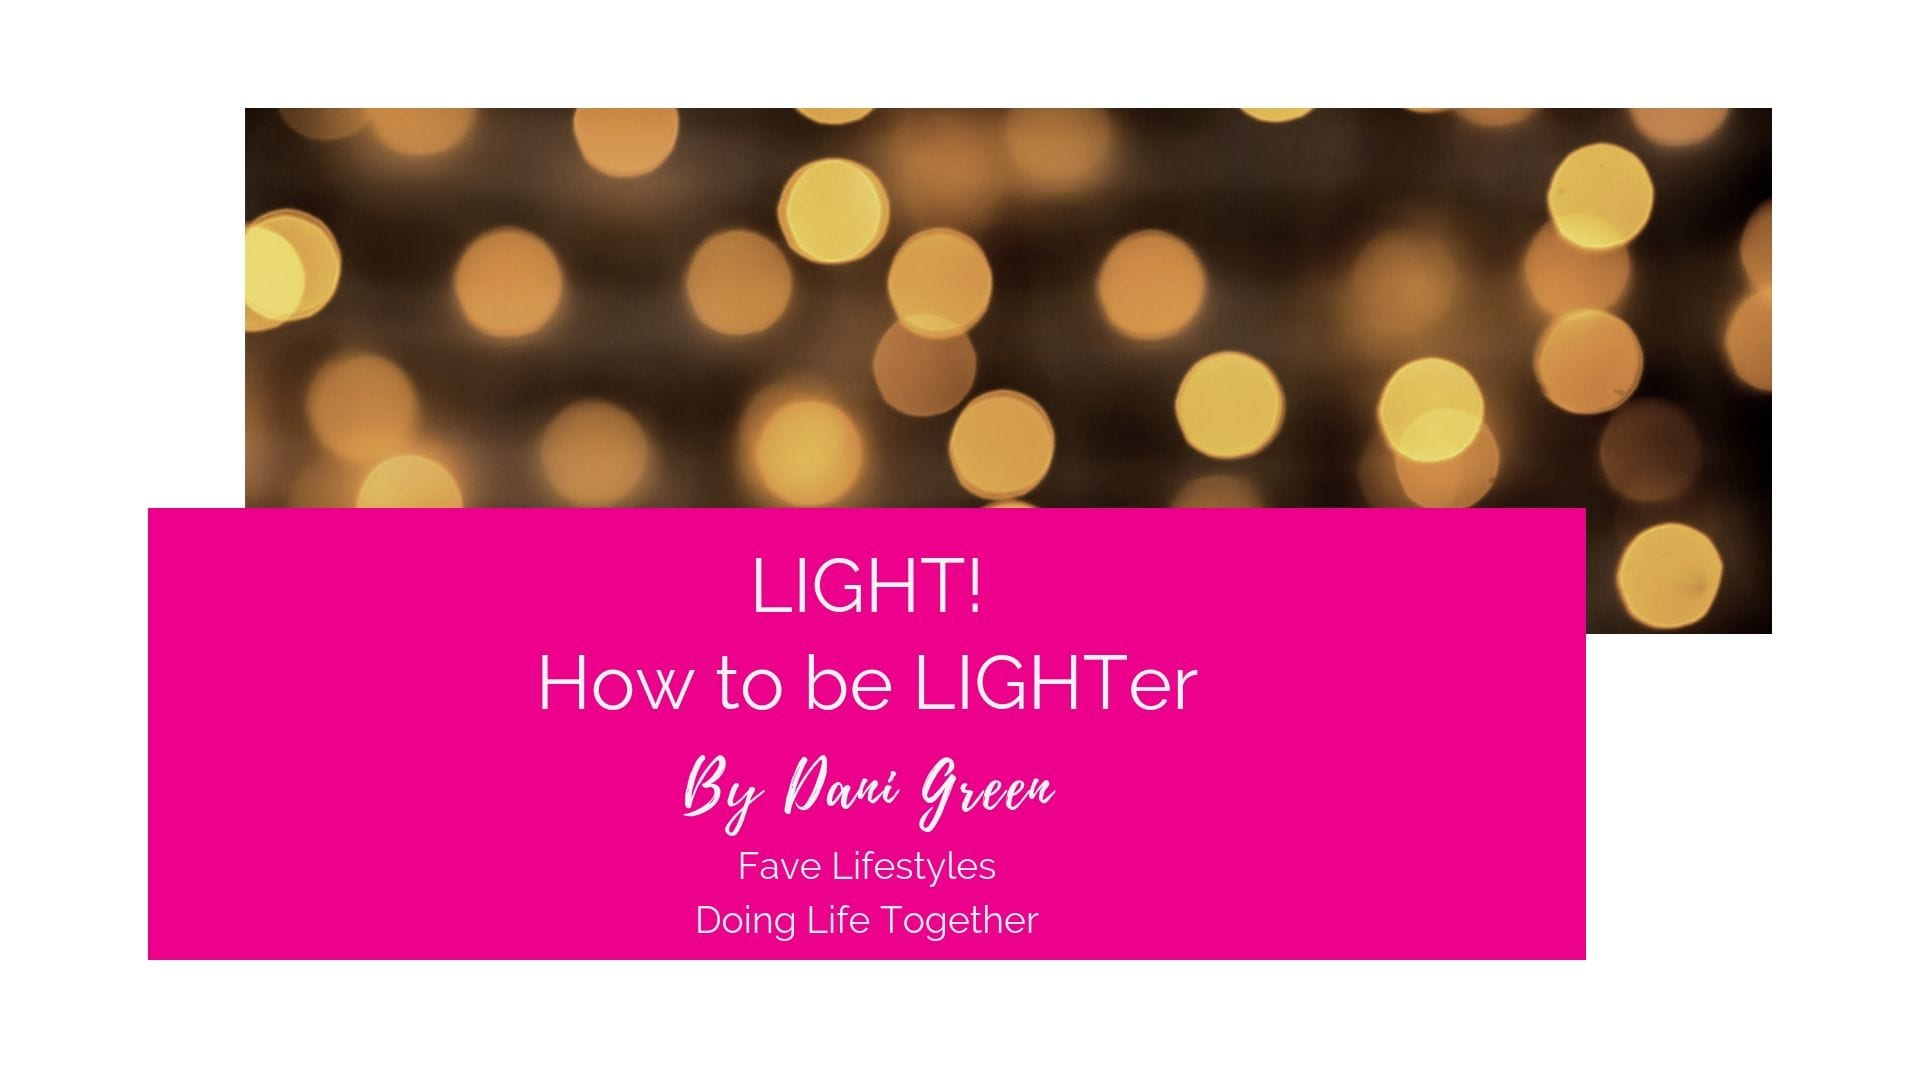 LIGHT! How to be LIGHTer